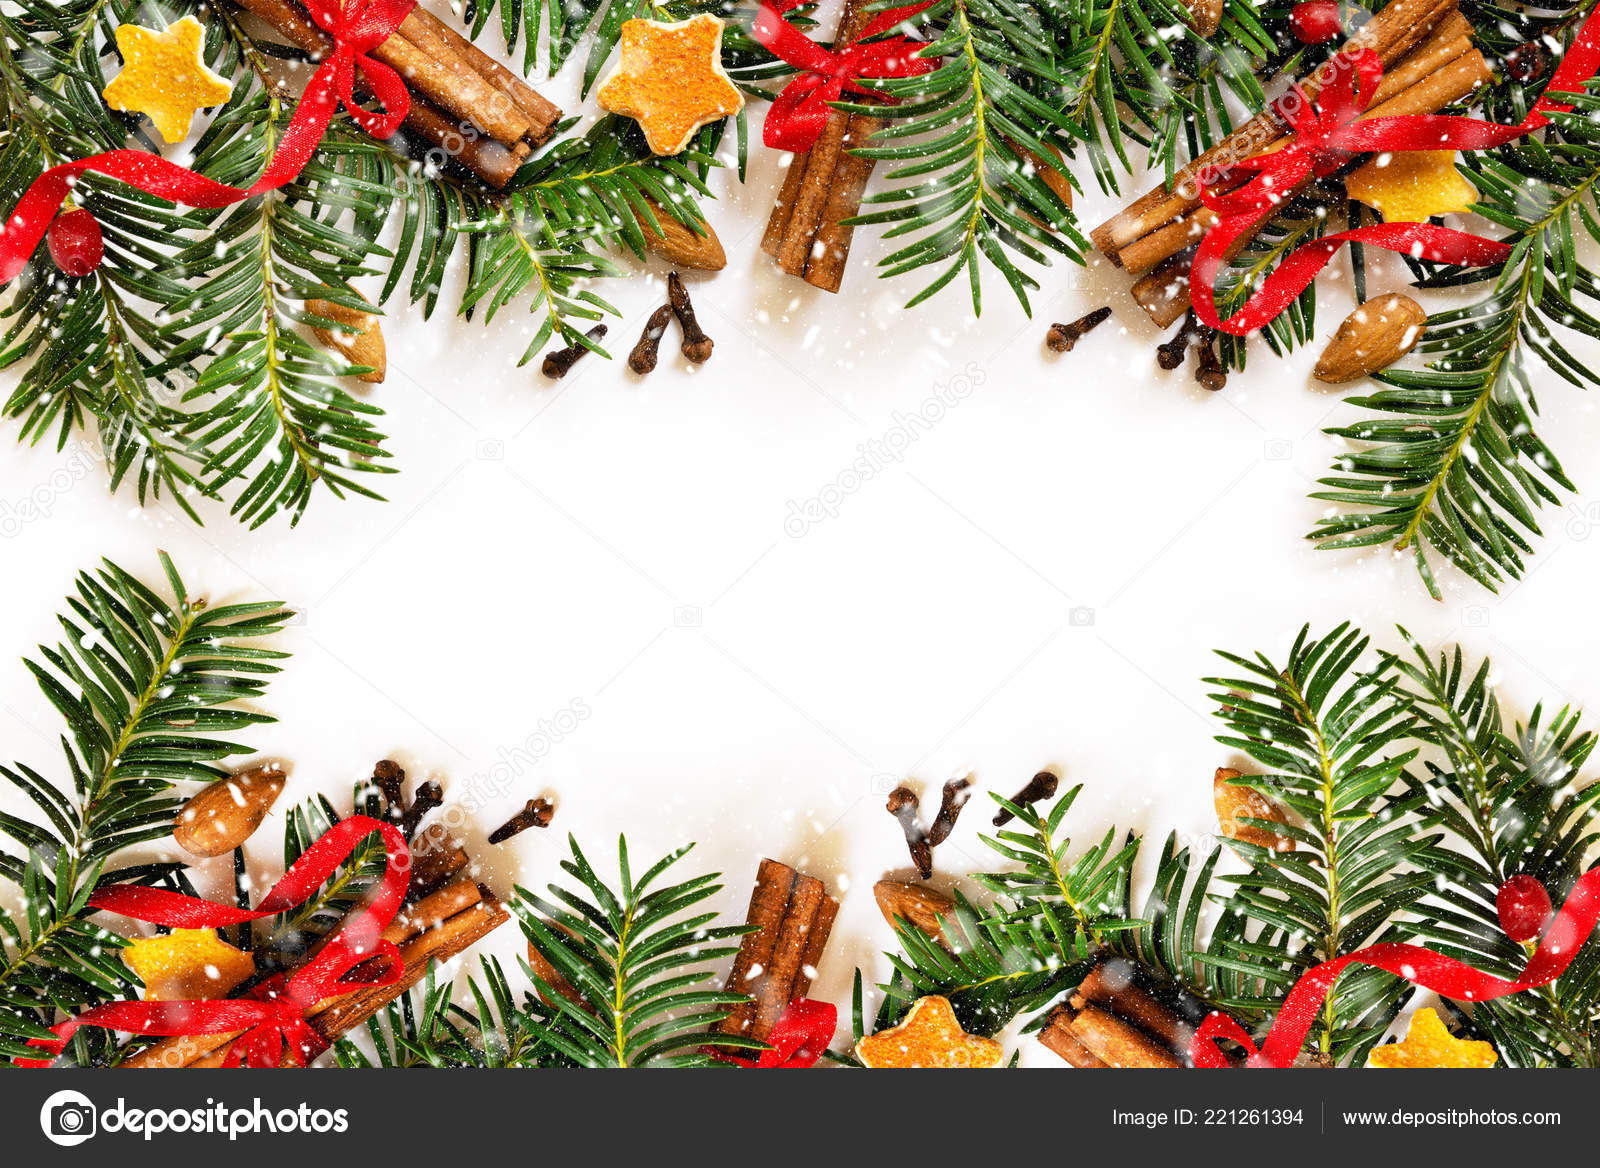 Christmas Border Design.Christmas Border Design On The White Background Stock